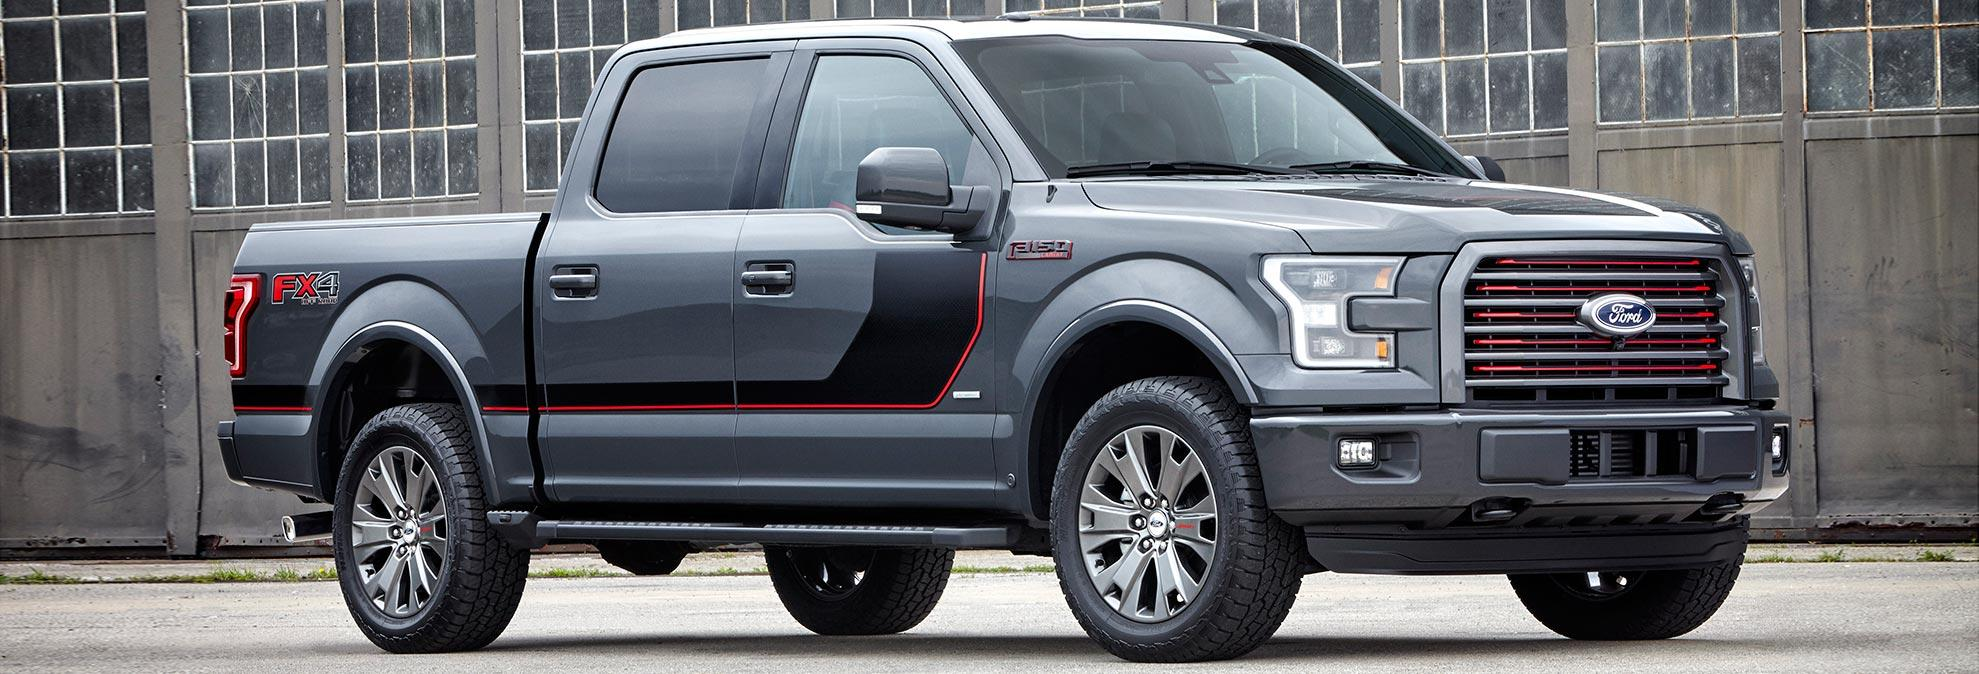 2017 ford f 150 gets new engine and transmission. Black Bedroom Furniture Sets. Home Design Ideas